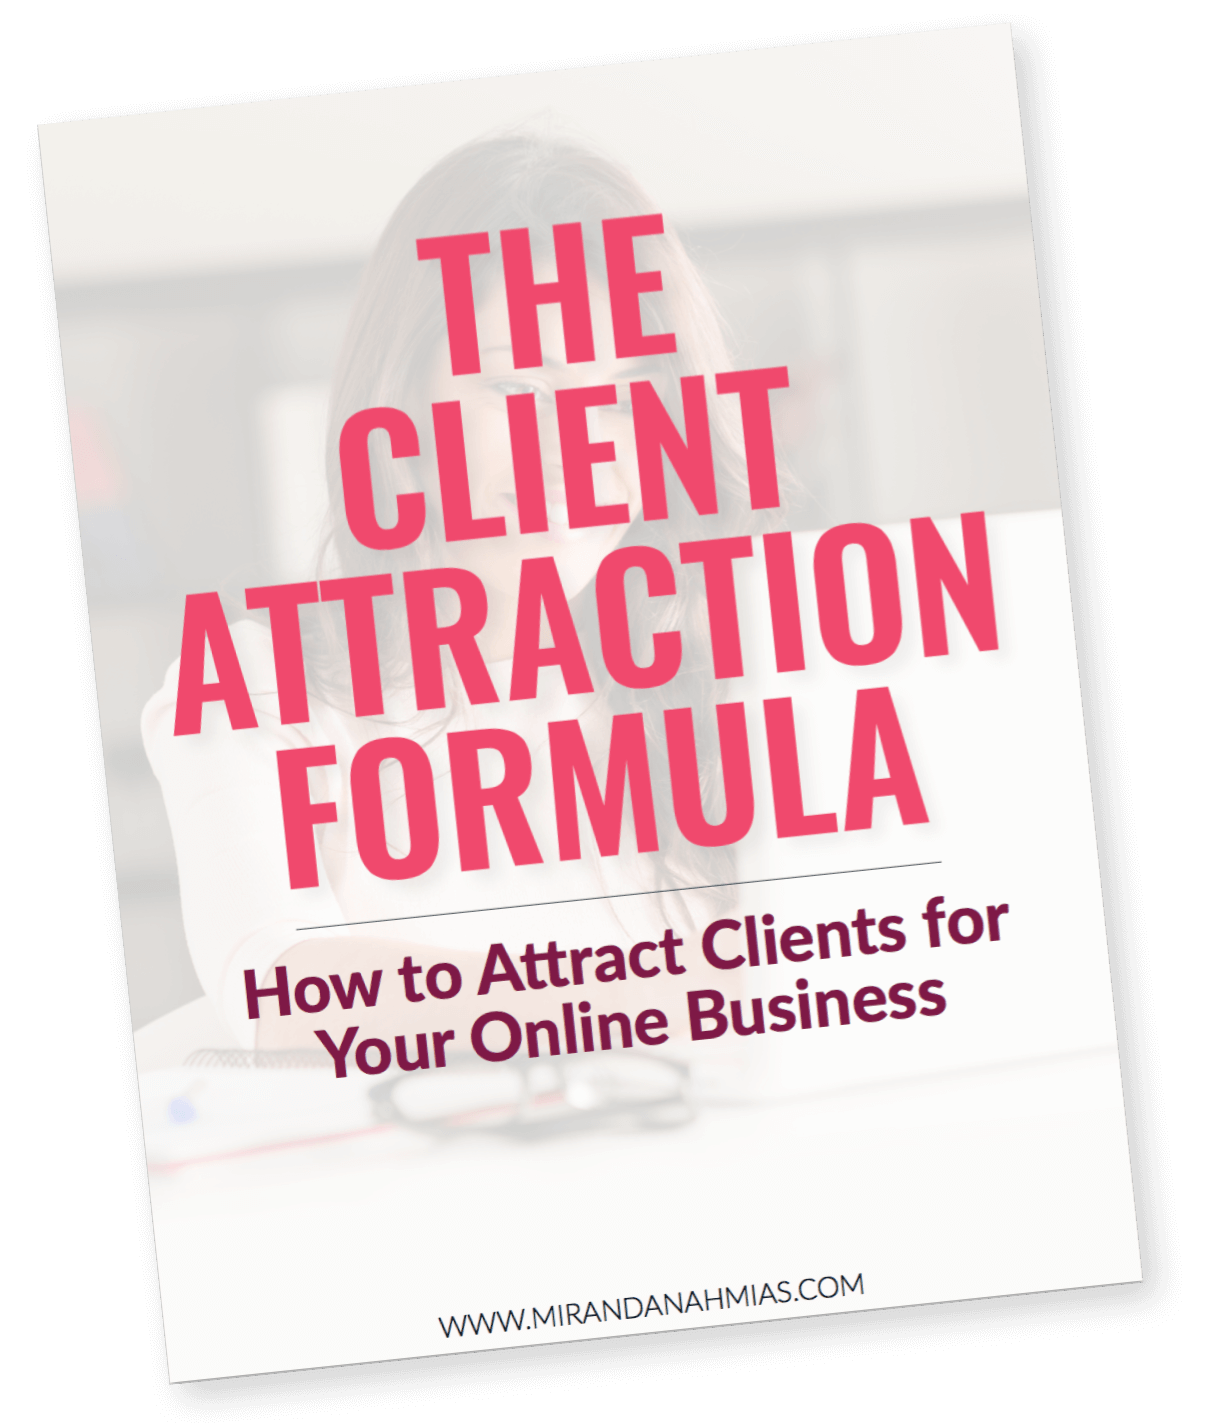 Client Attraction Formula Mockup